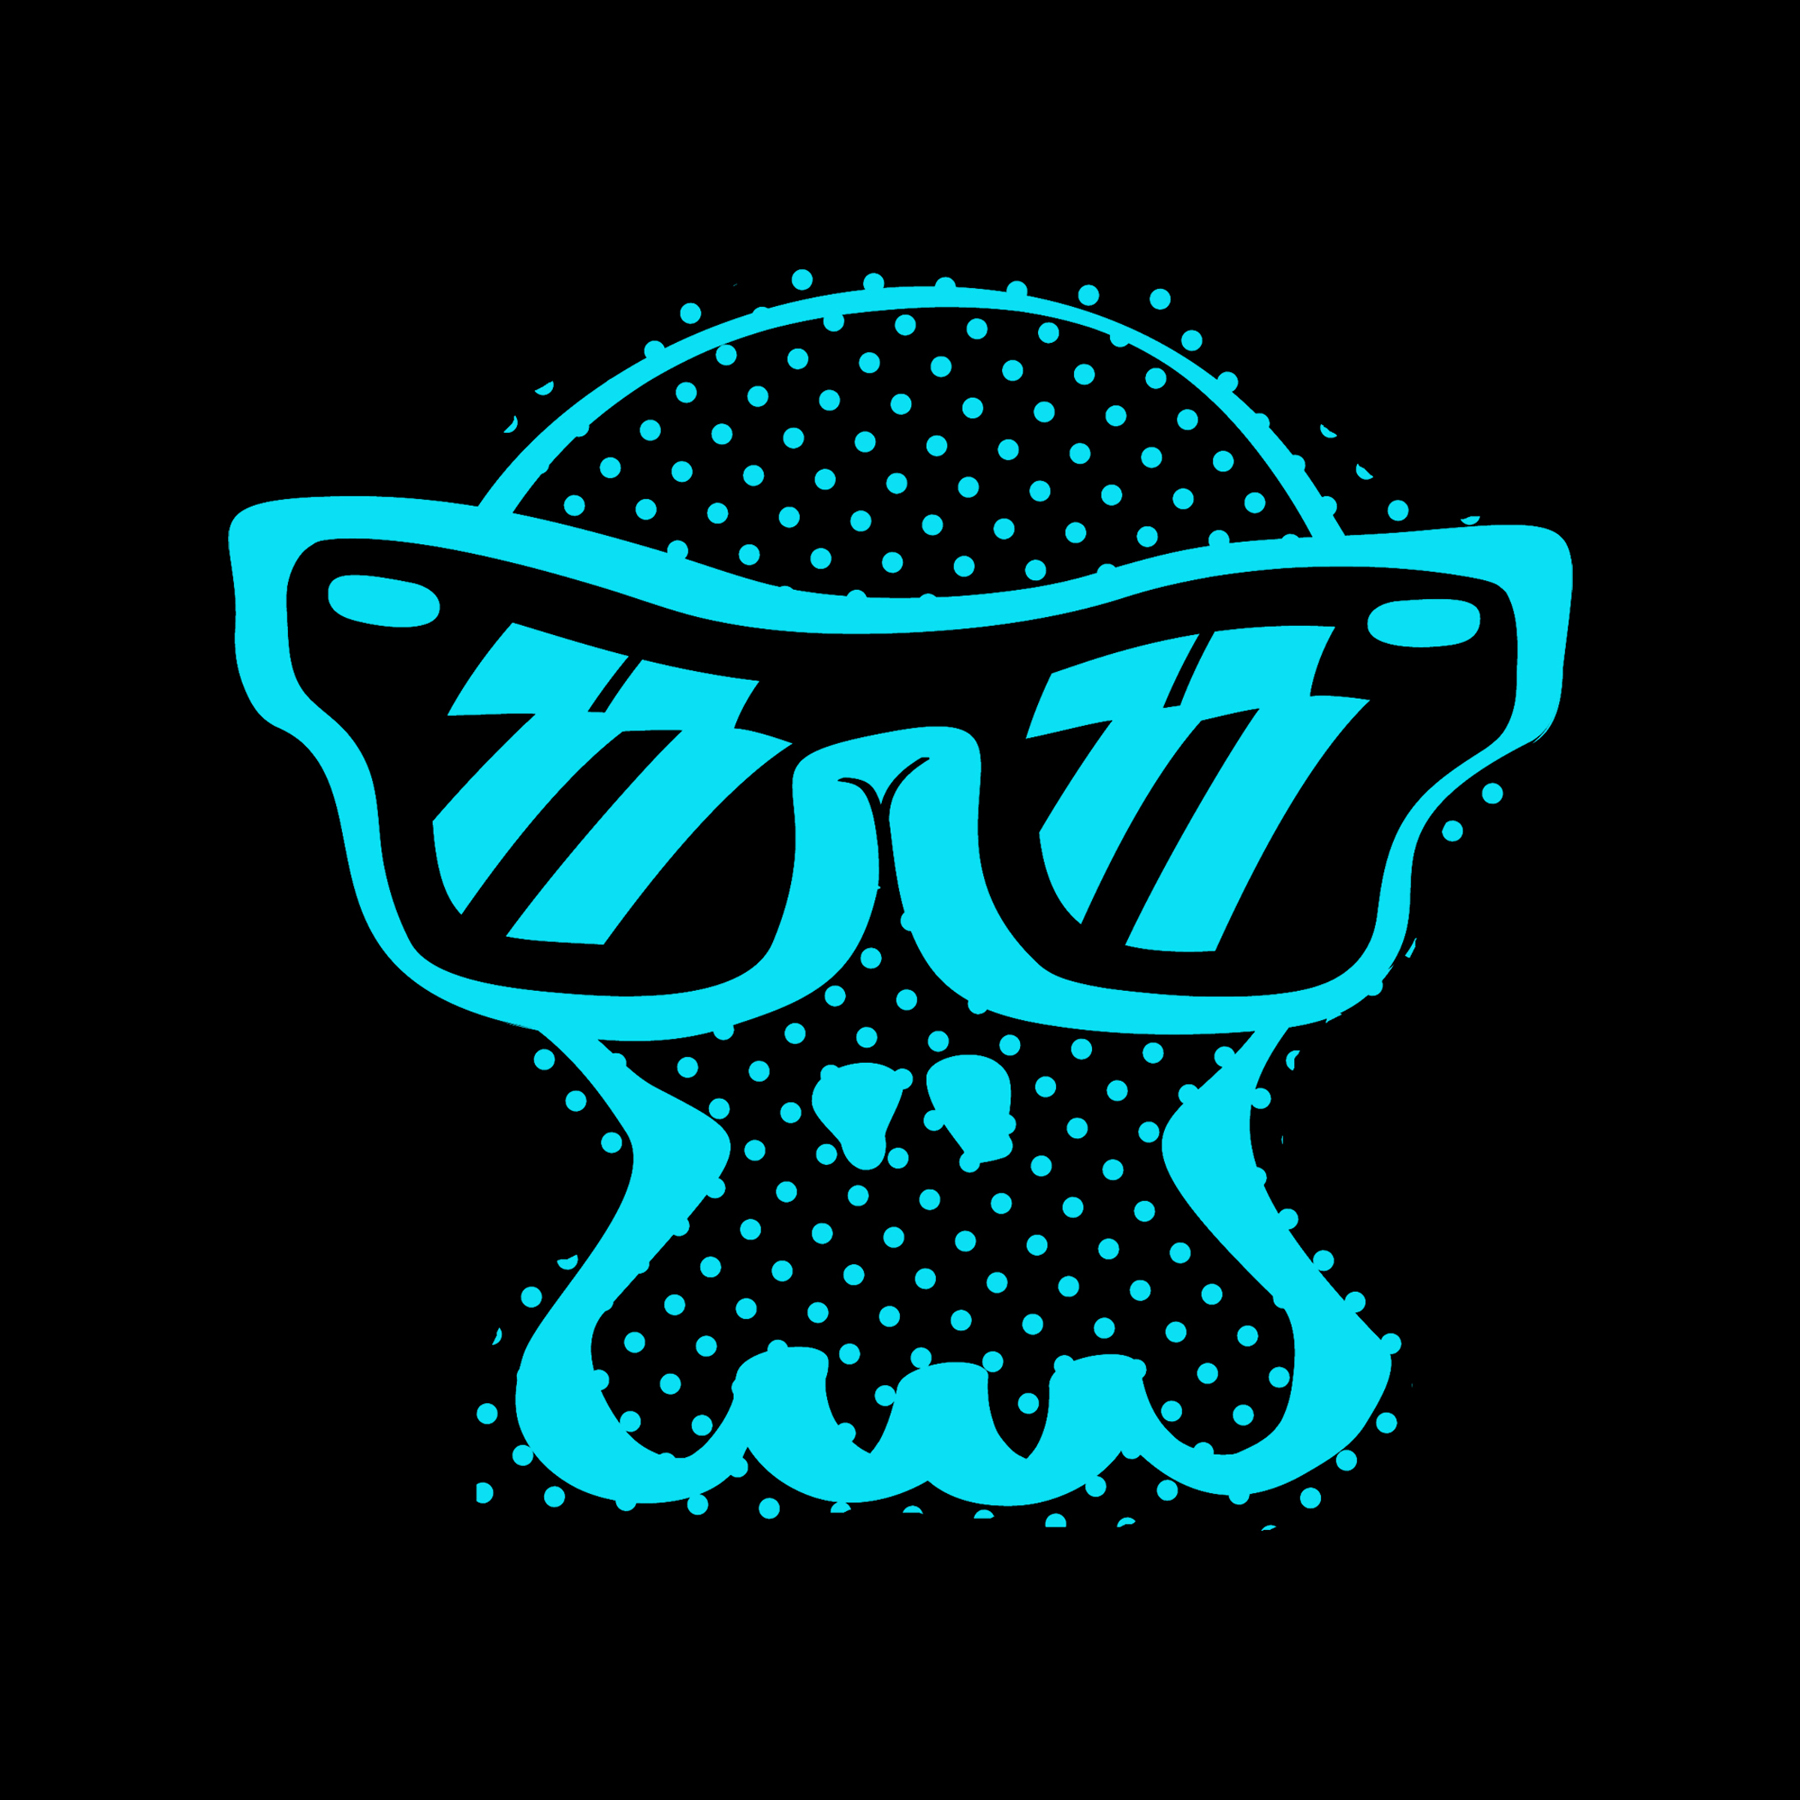 Ray-Ban Never Hide, Colorize, Skull